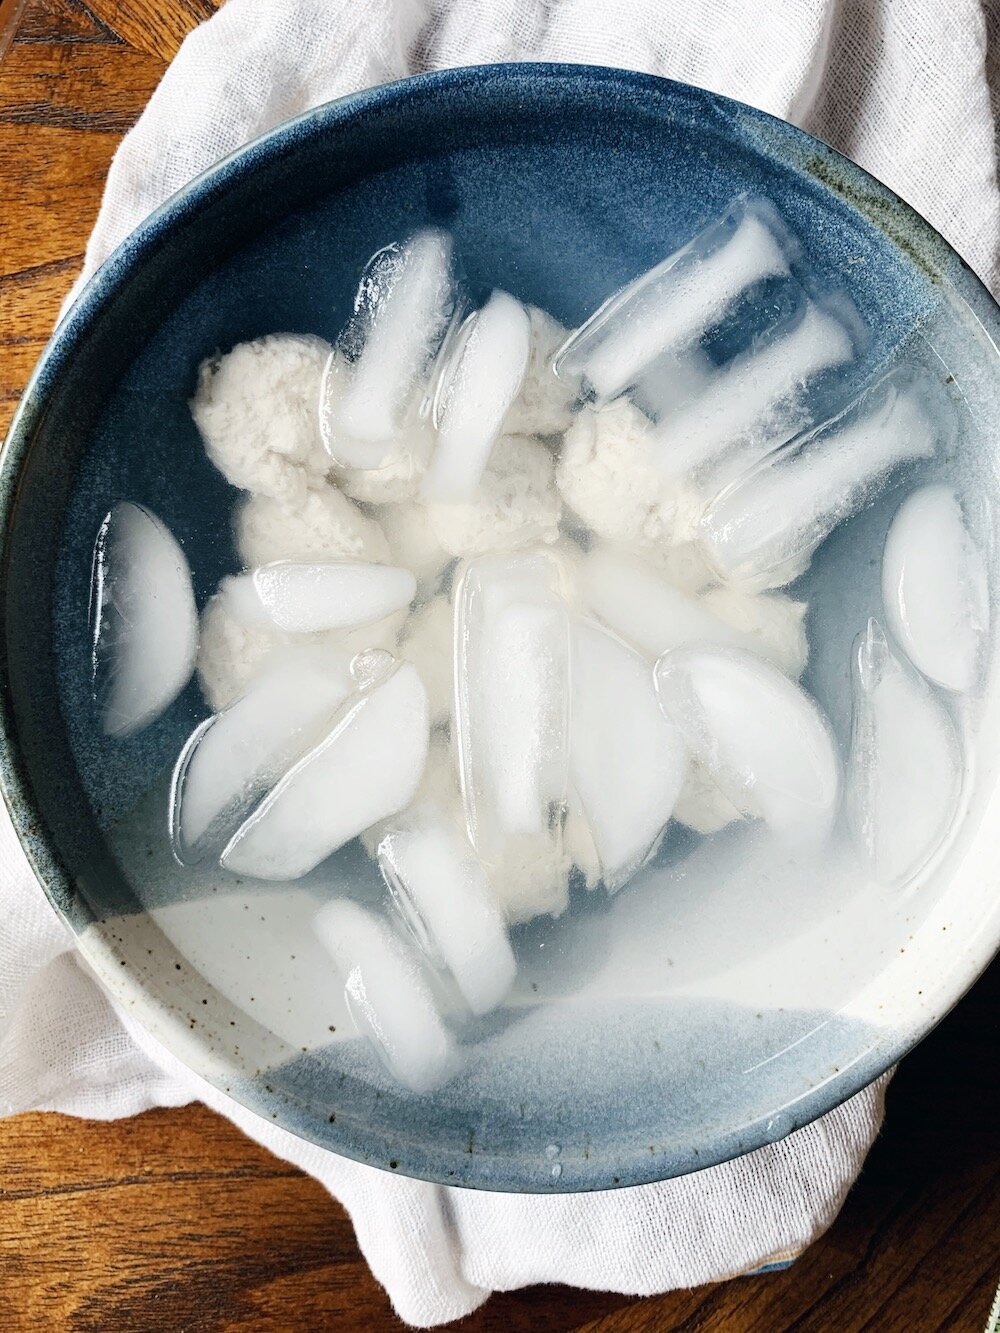 Cheese in Ice Bath